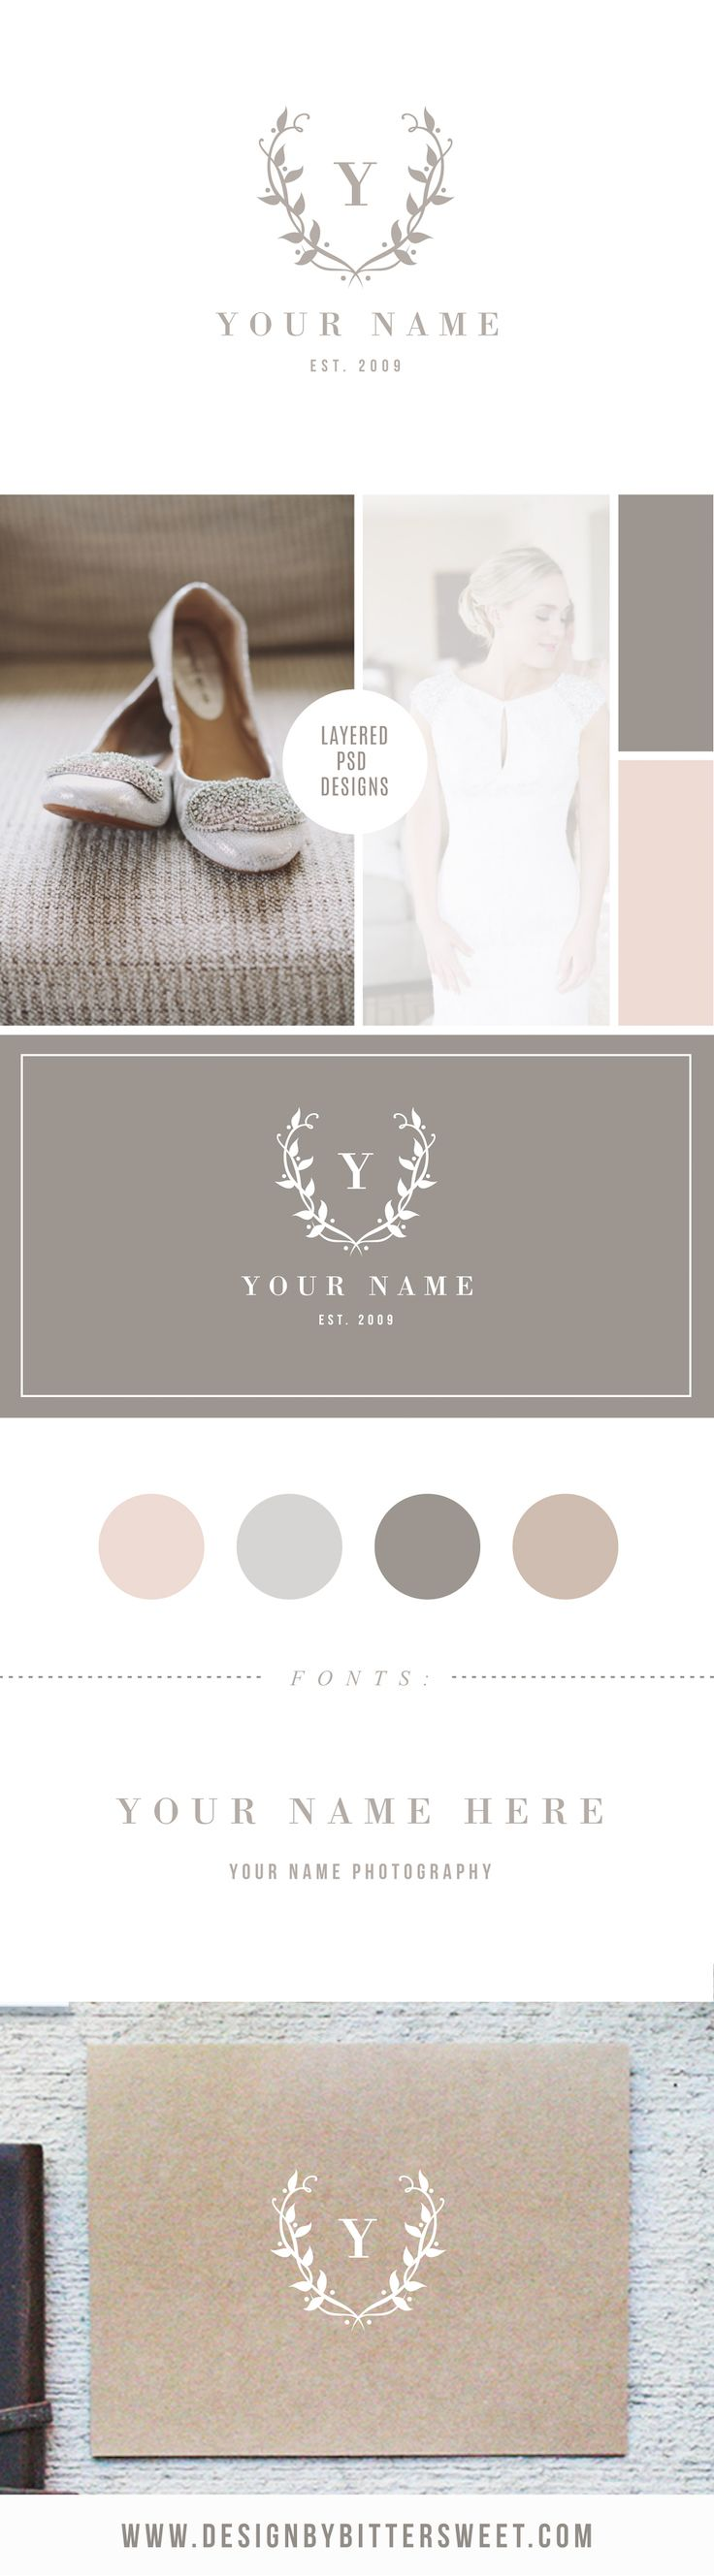 Our newest logos in the shop. Photography business logos. Wedding photography logos.